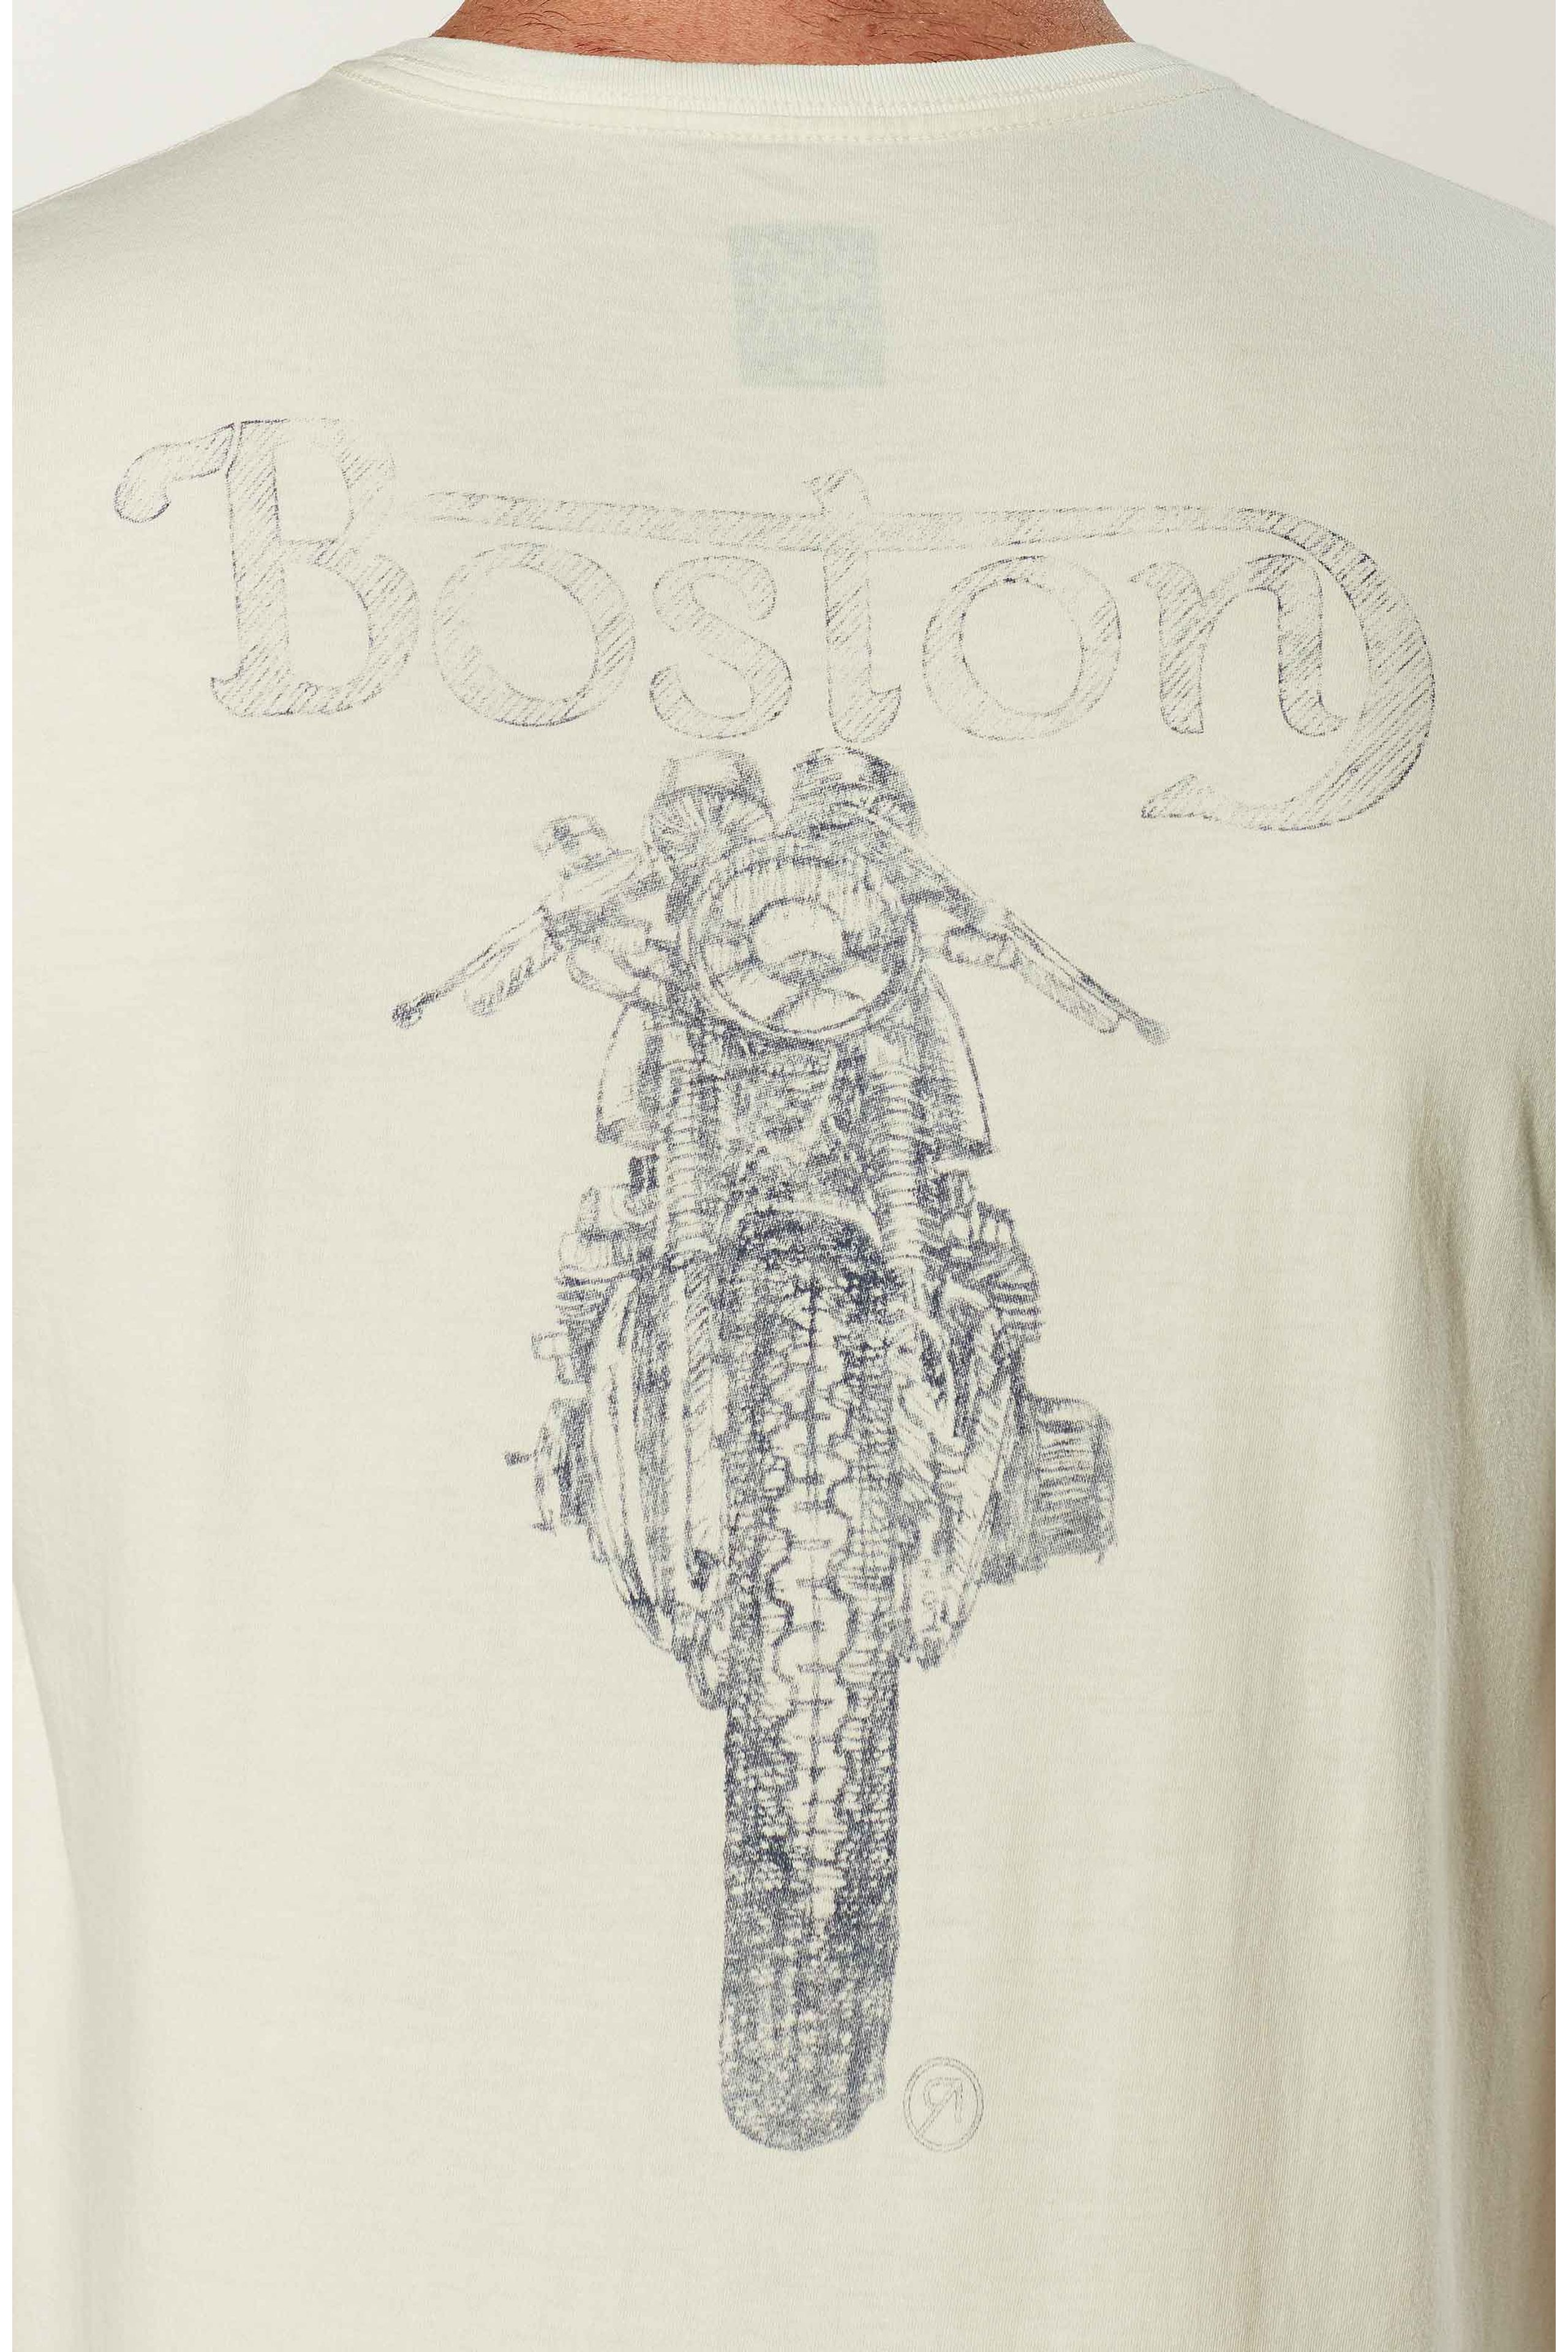 8353CCV00282_418_1-TSHIRT-MC-MALHA-MOTORCYCLE-BOSTON